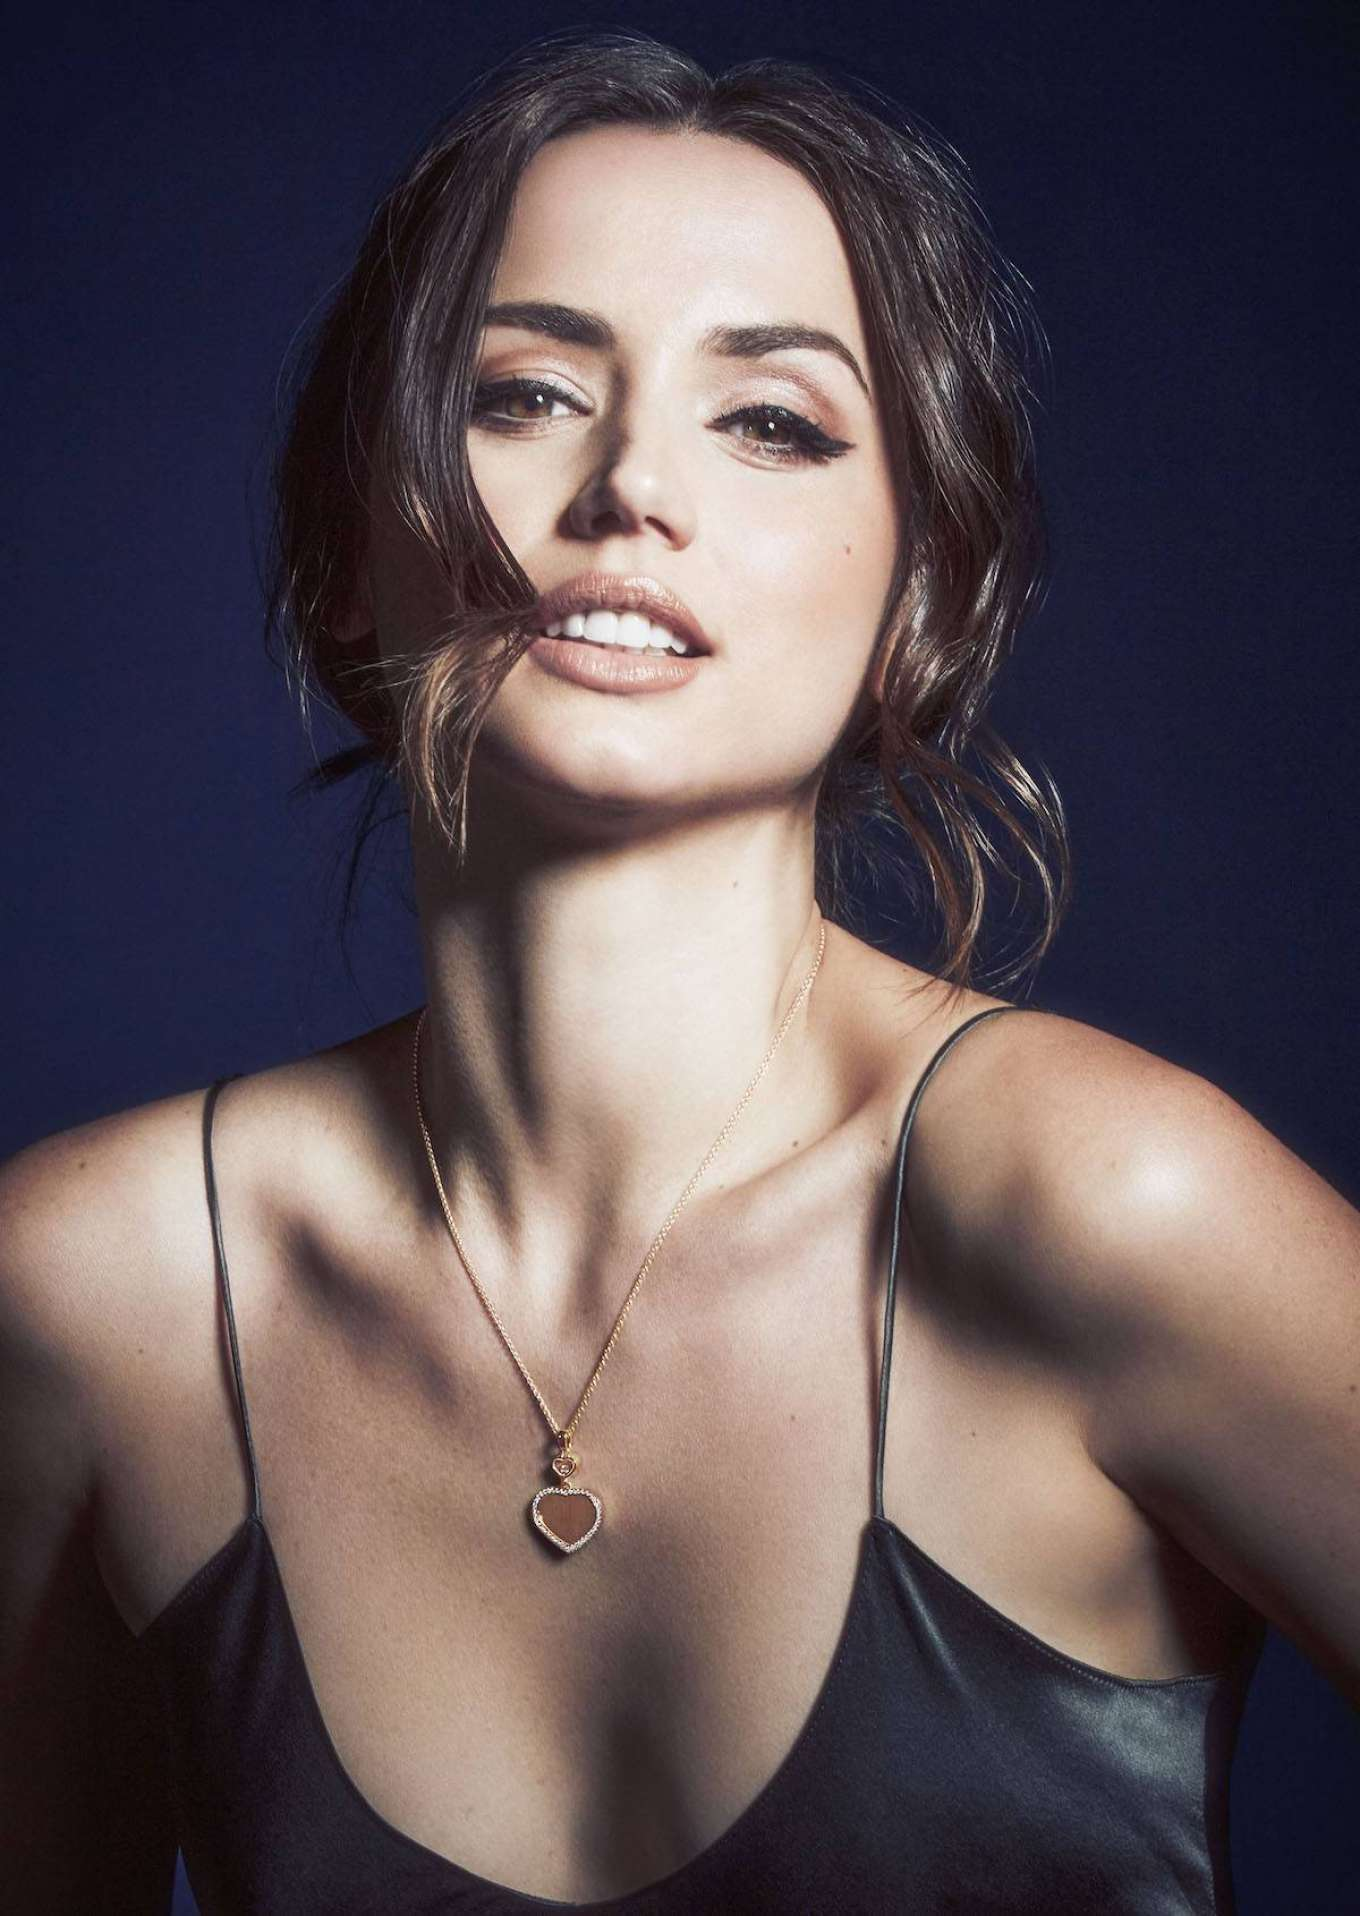 Ana de Armas - Global Ambassador for Chopard - February 2020